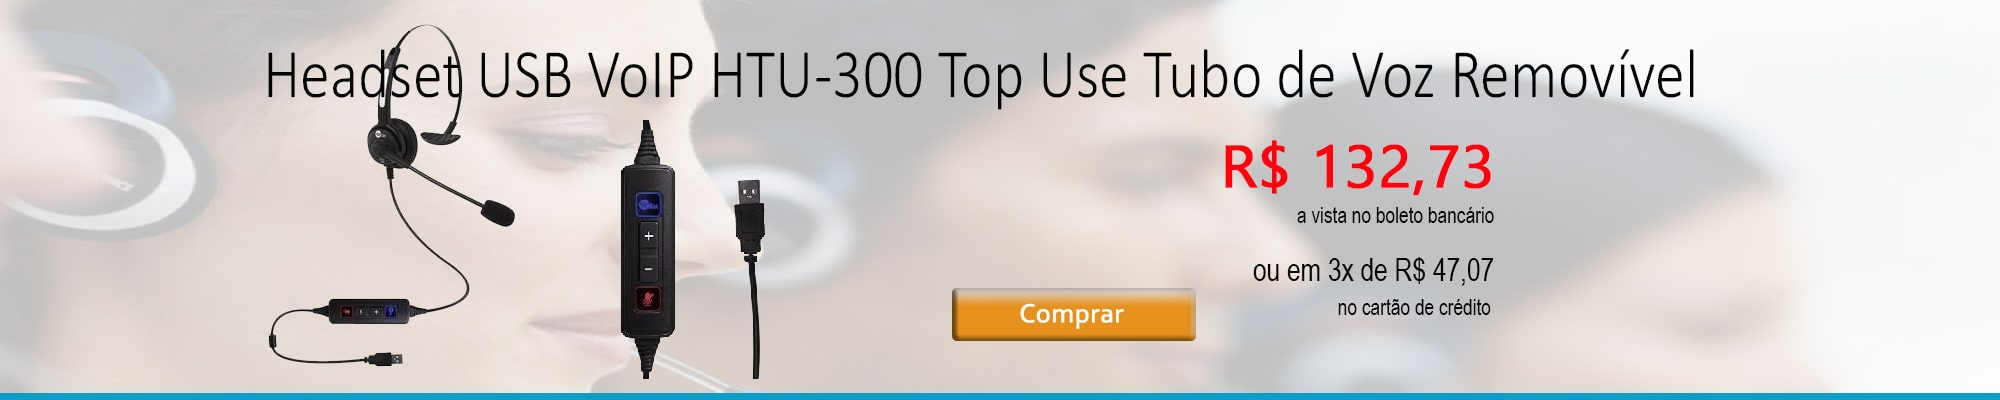 Headset VoIP USB HTU-300 Top Use